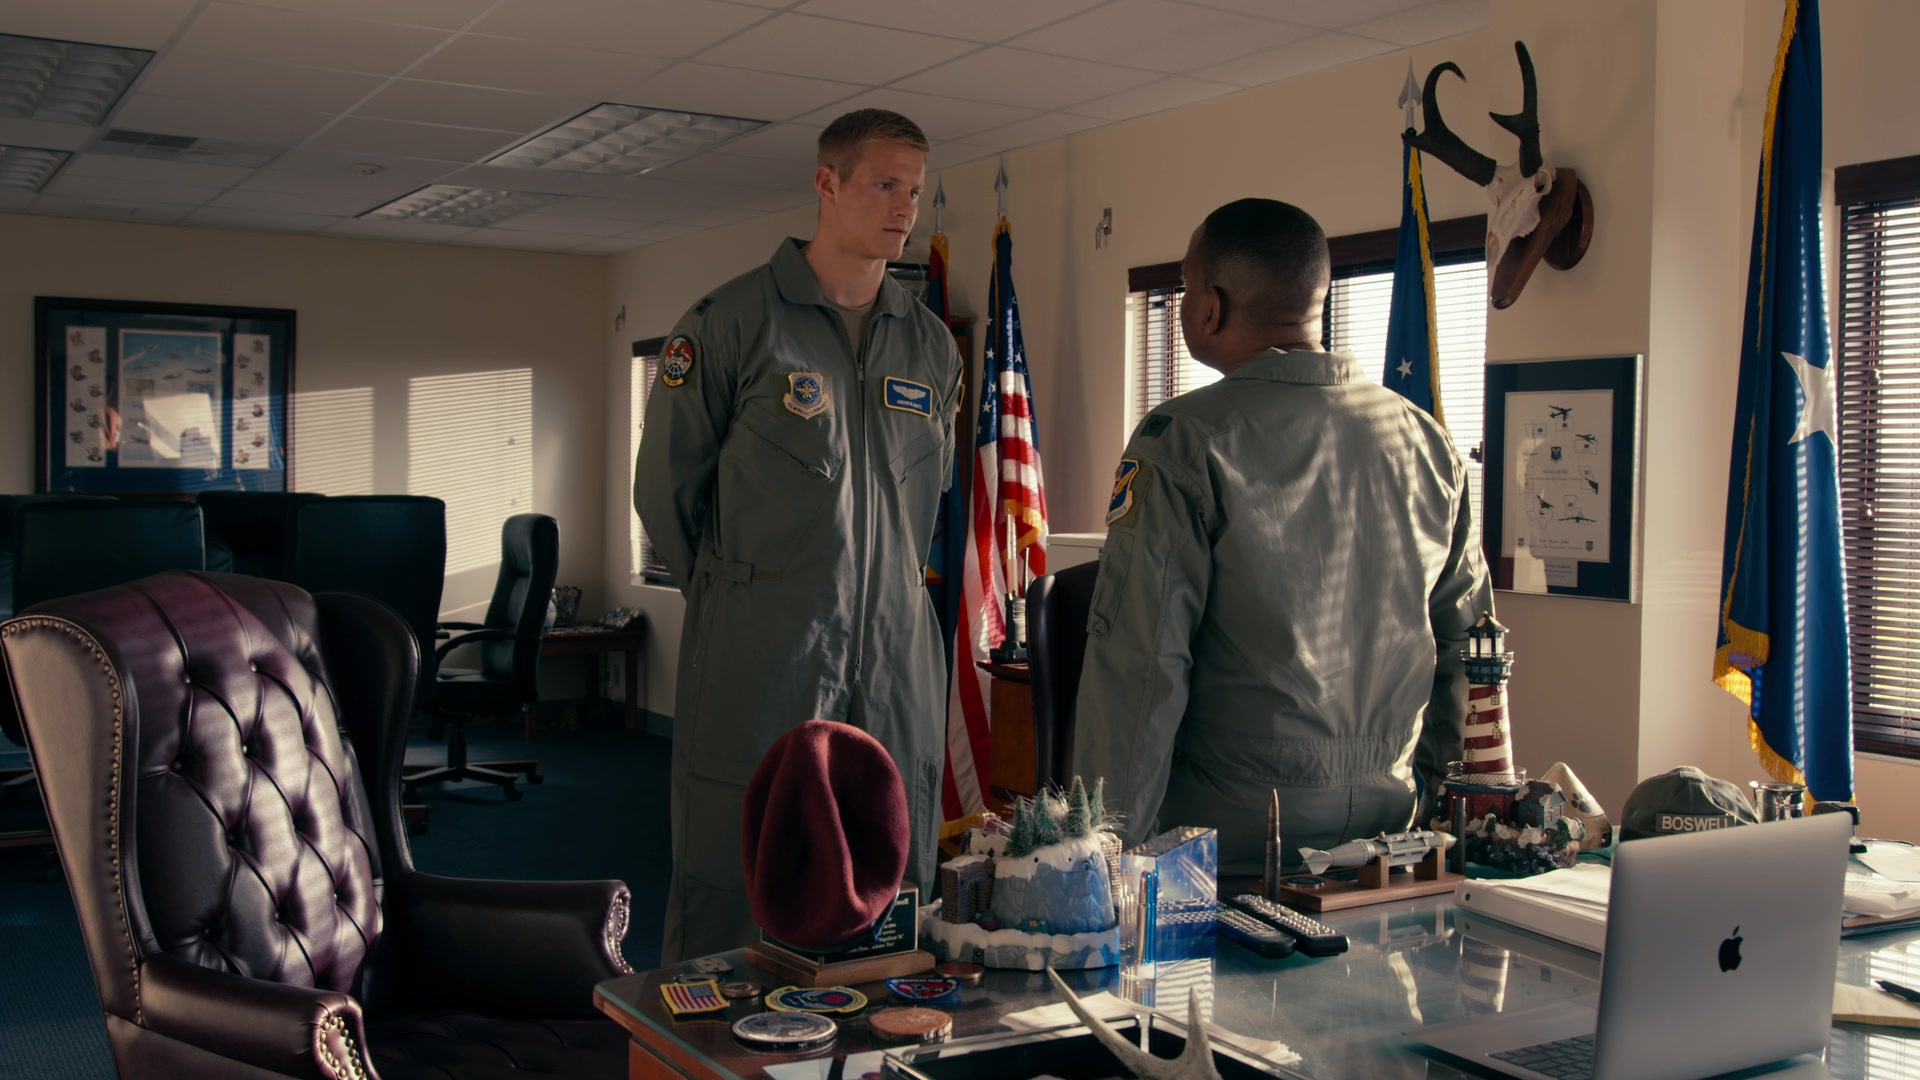 Apple MacBook Laptops Used by Actors in Operation Christmas Drop (2020)